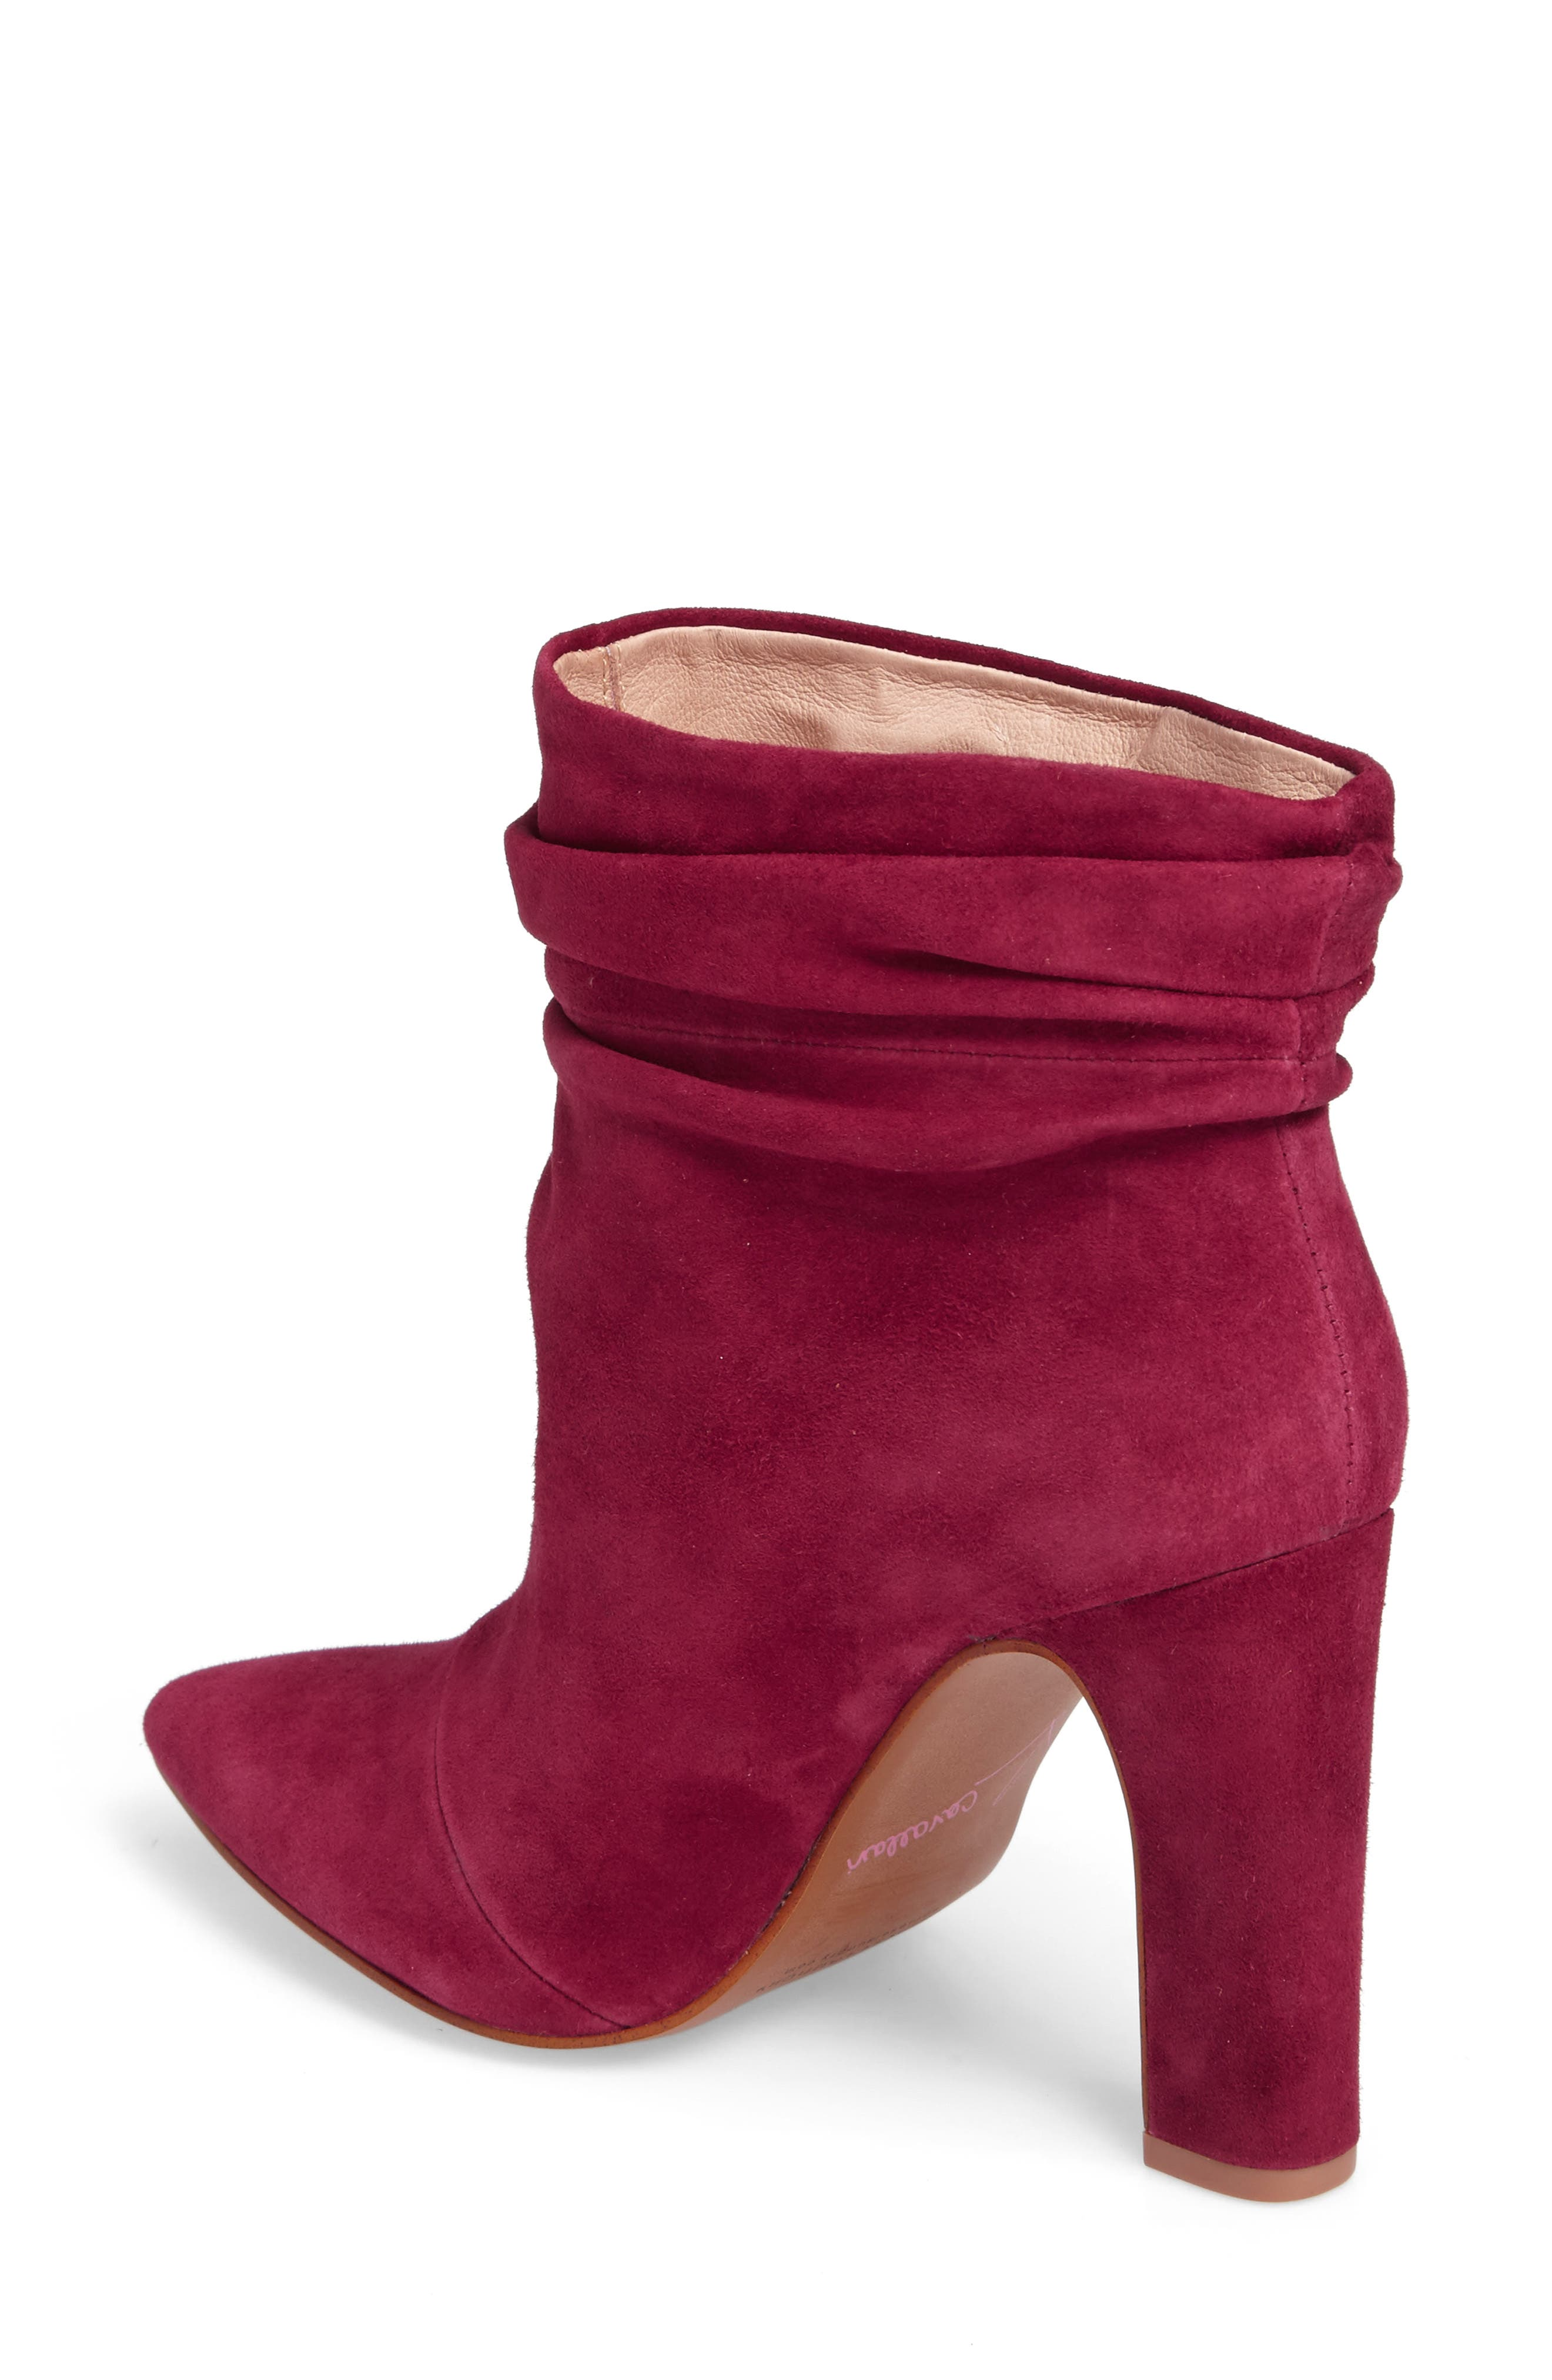 Kane Bootie,                             Alternate thumbnail 2, color,                             RED SUEDE